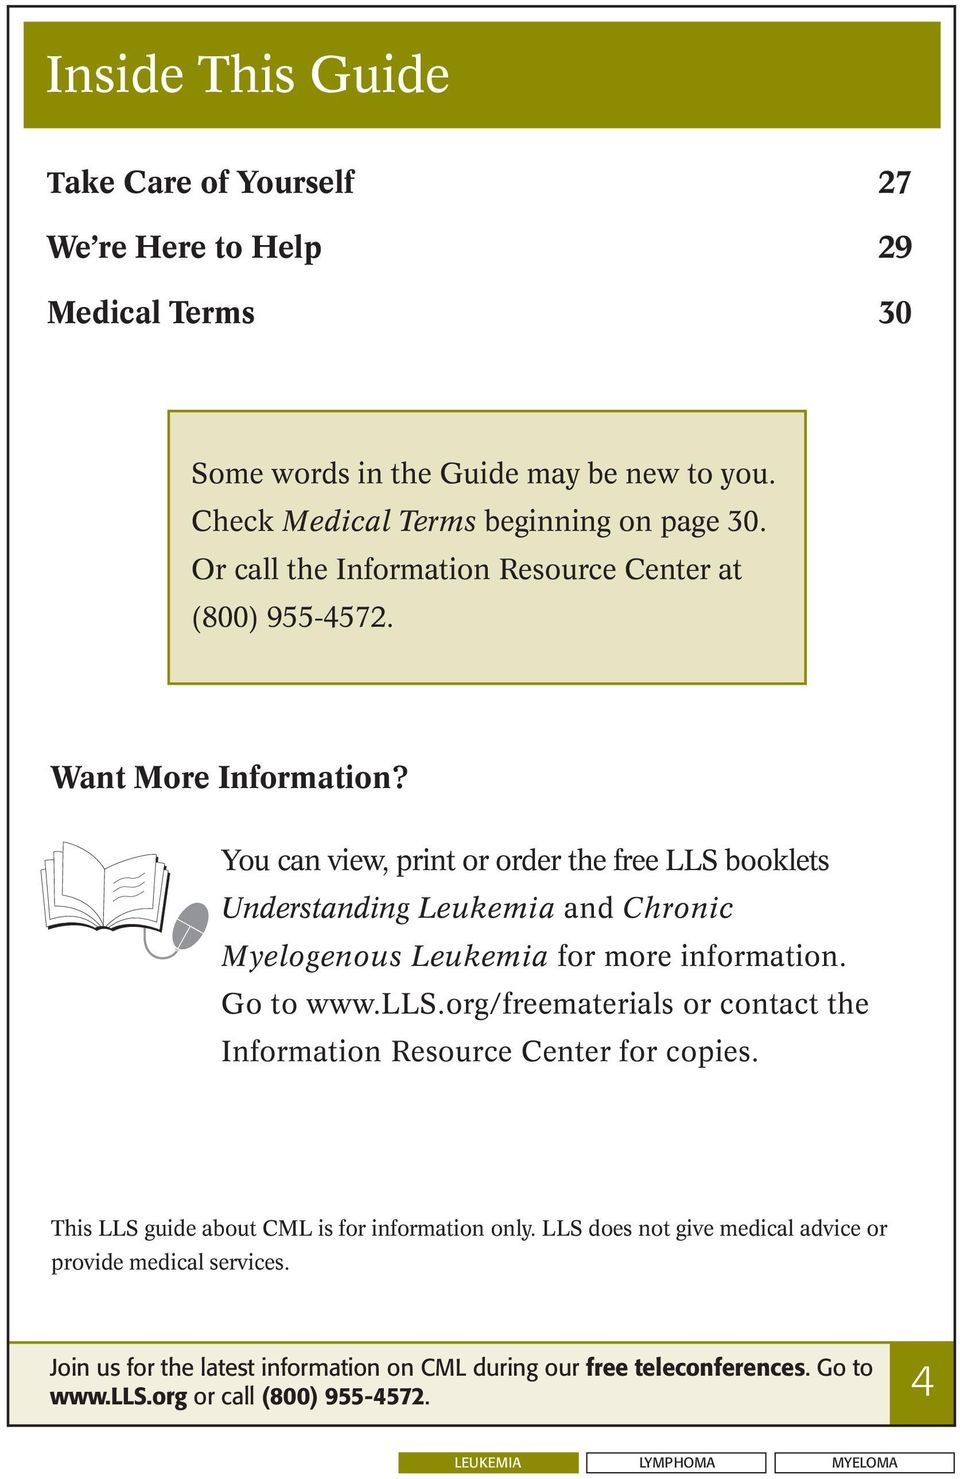 You can view, print or order the free LLS booklets Understanding Leukemia and Chronic Myelogenous Leukemia for more information. Go to www.lls.